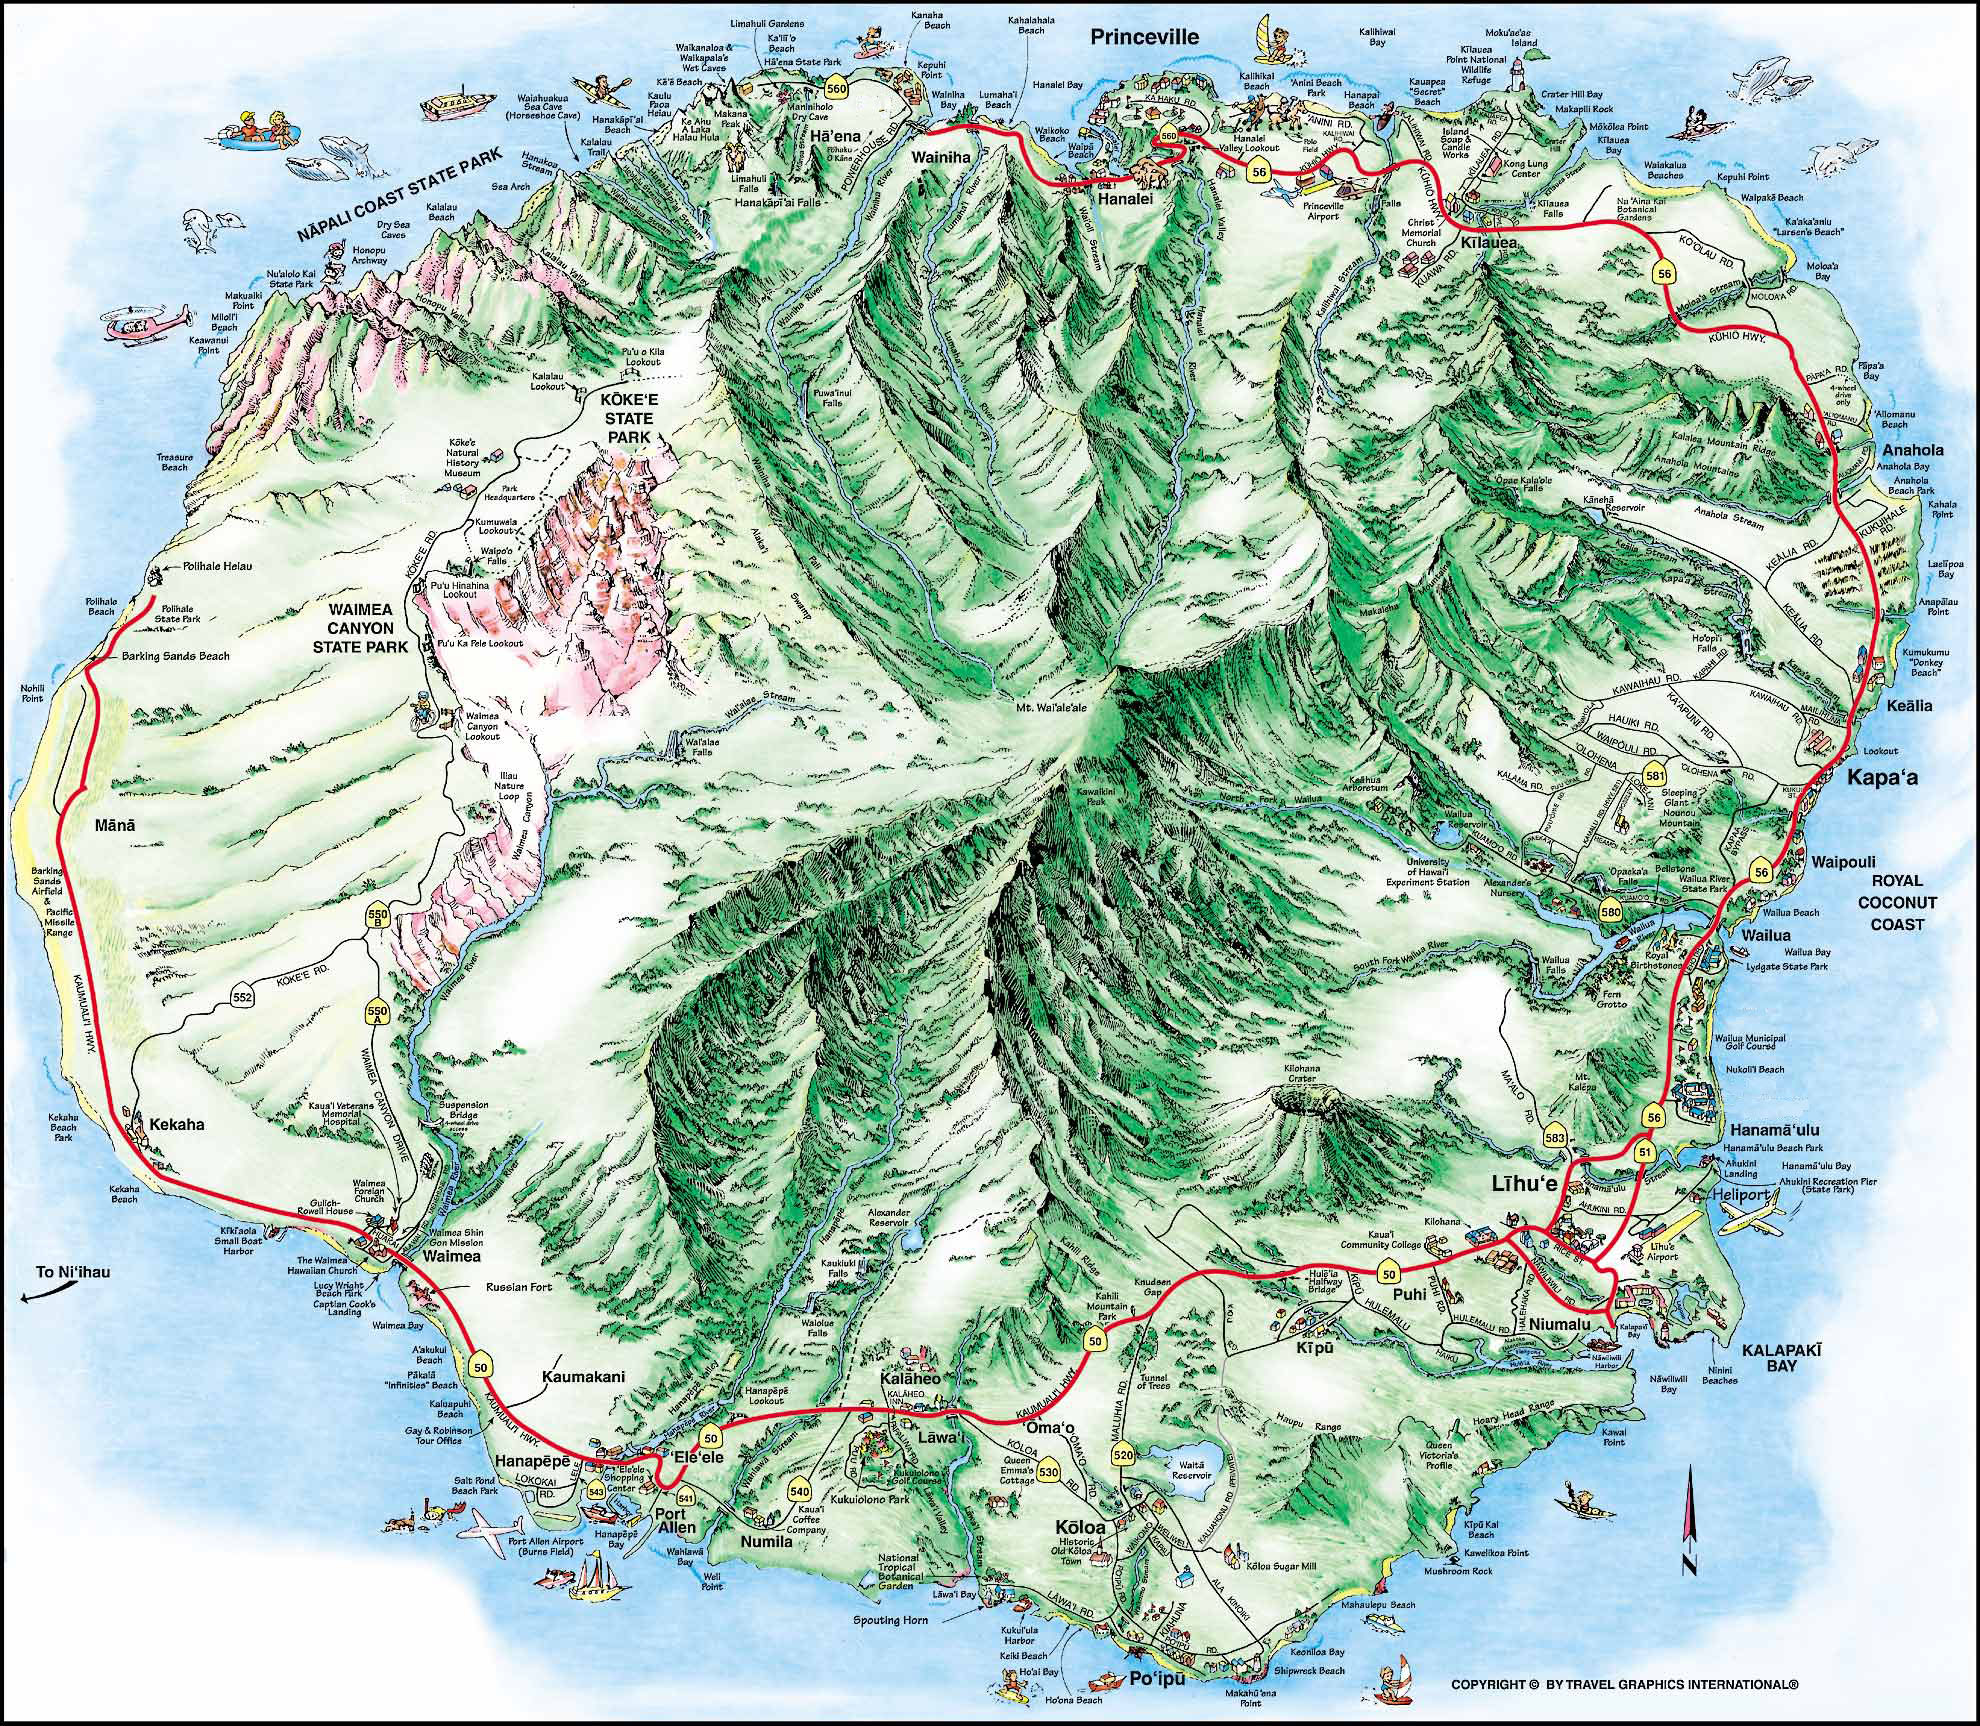 zoom Map Of Kauai Island on map of madrid, map of miami, map of porto, map of hawaiian islands, map of kahului, map of lansing, map of salt lake city, map of glasgow, map of lanai city, map of singapore, map of kona, map of honolulu, map of florence, map of johannesburg, map of new york, map of cedar rapids, map of cancun, map of hilo, map of norfolk, map of ontario,